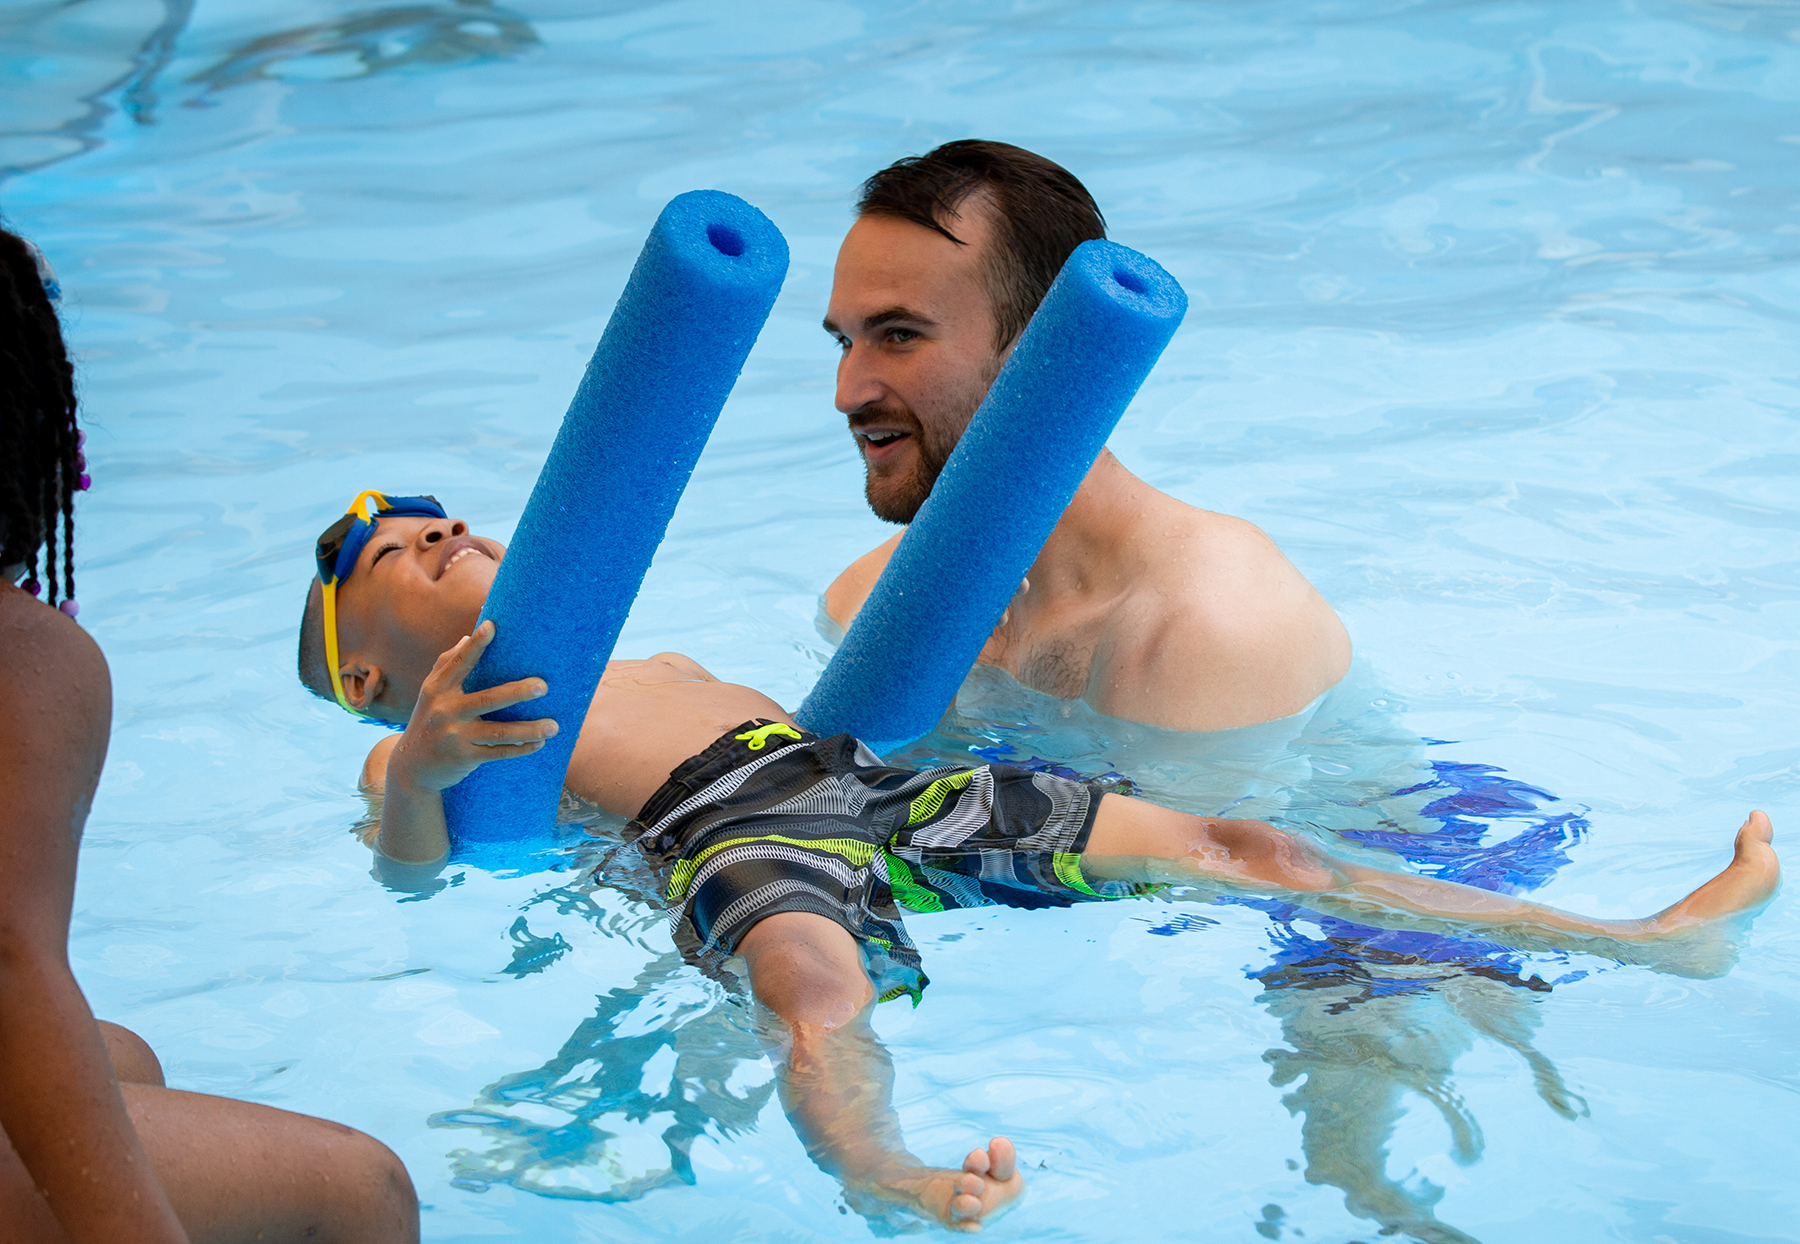 Swim instructor Jake Peterson works with a child learning to float on the water.